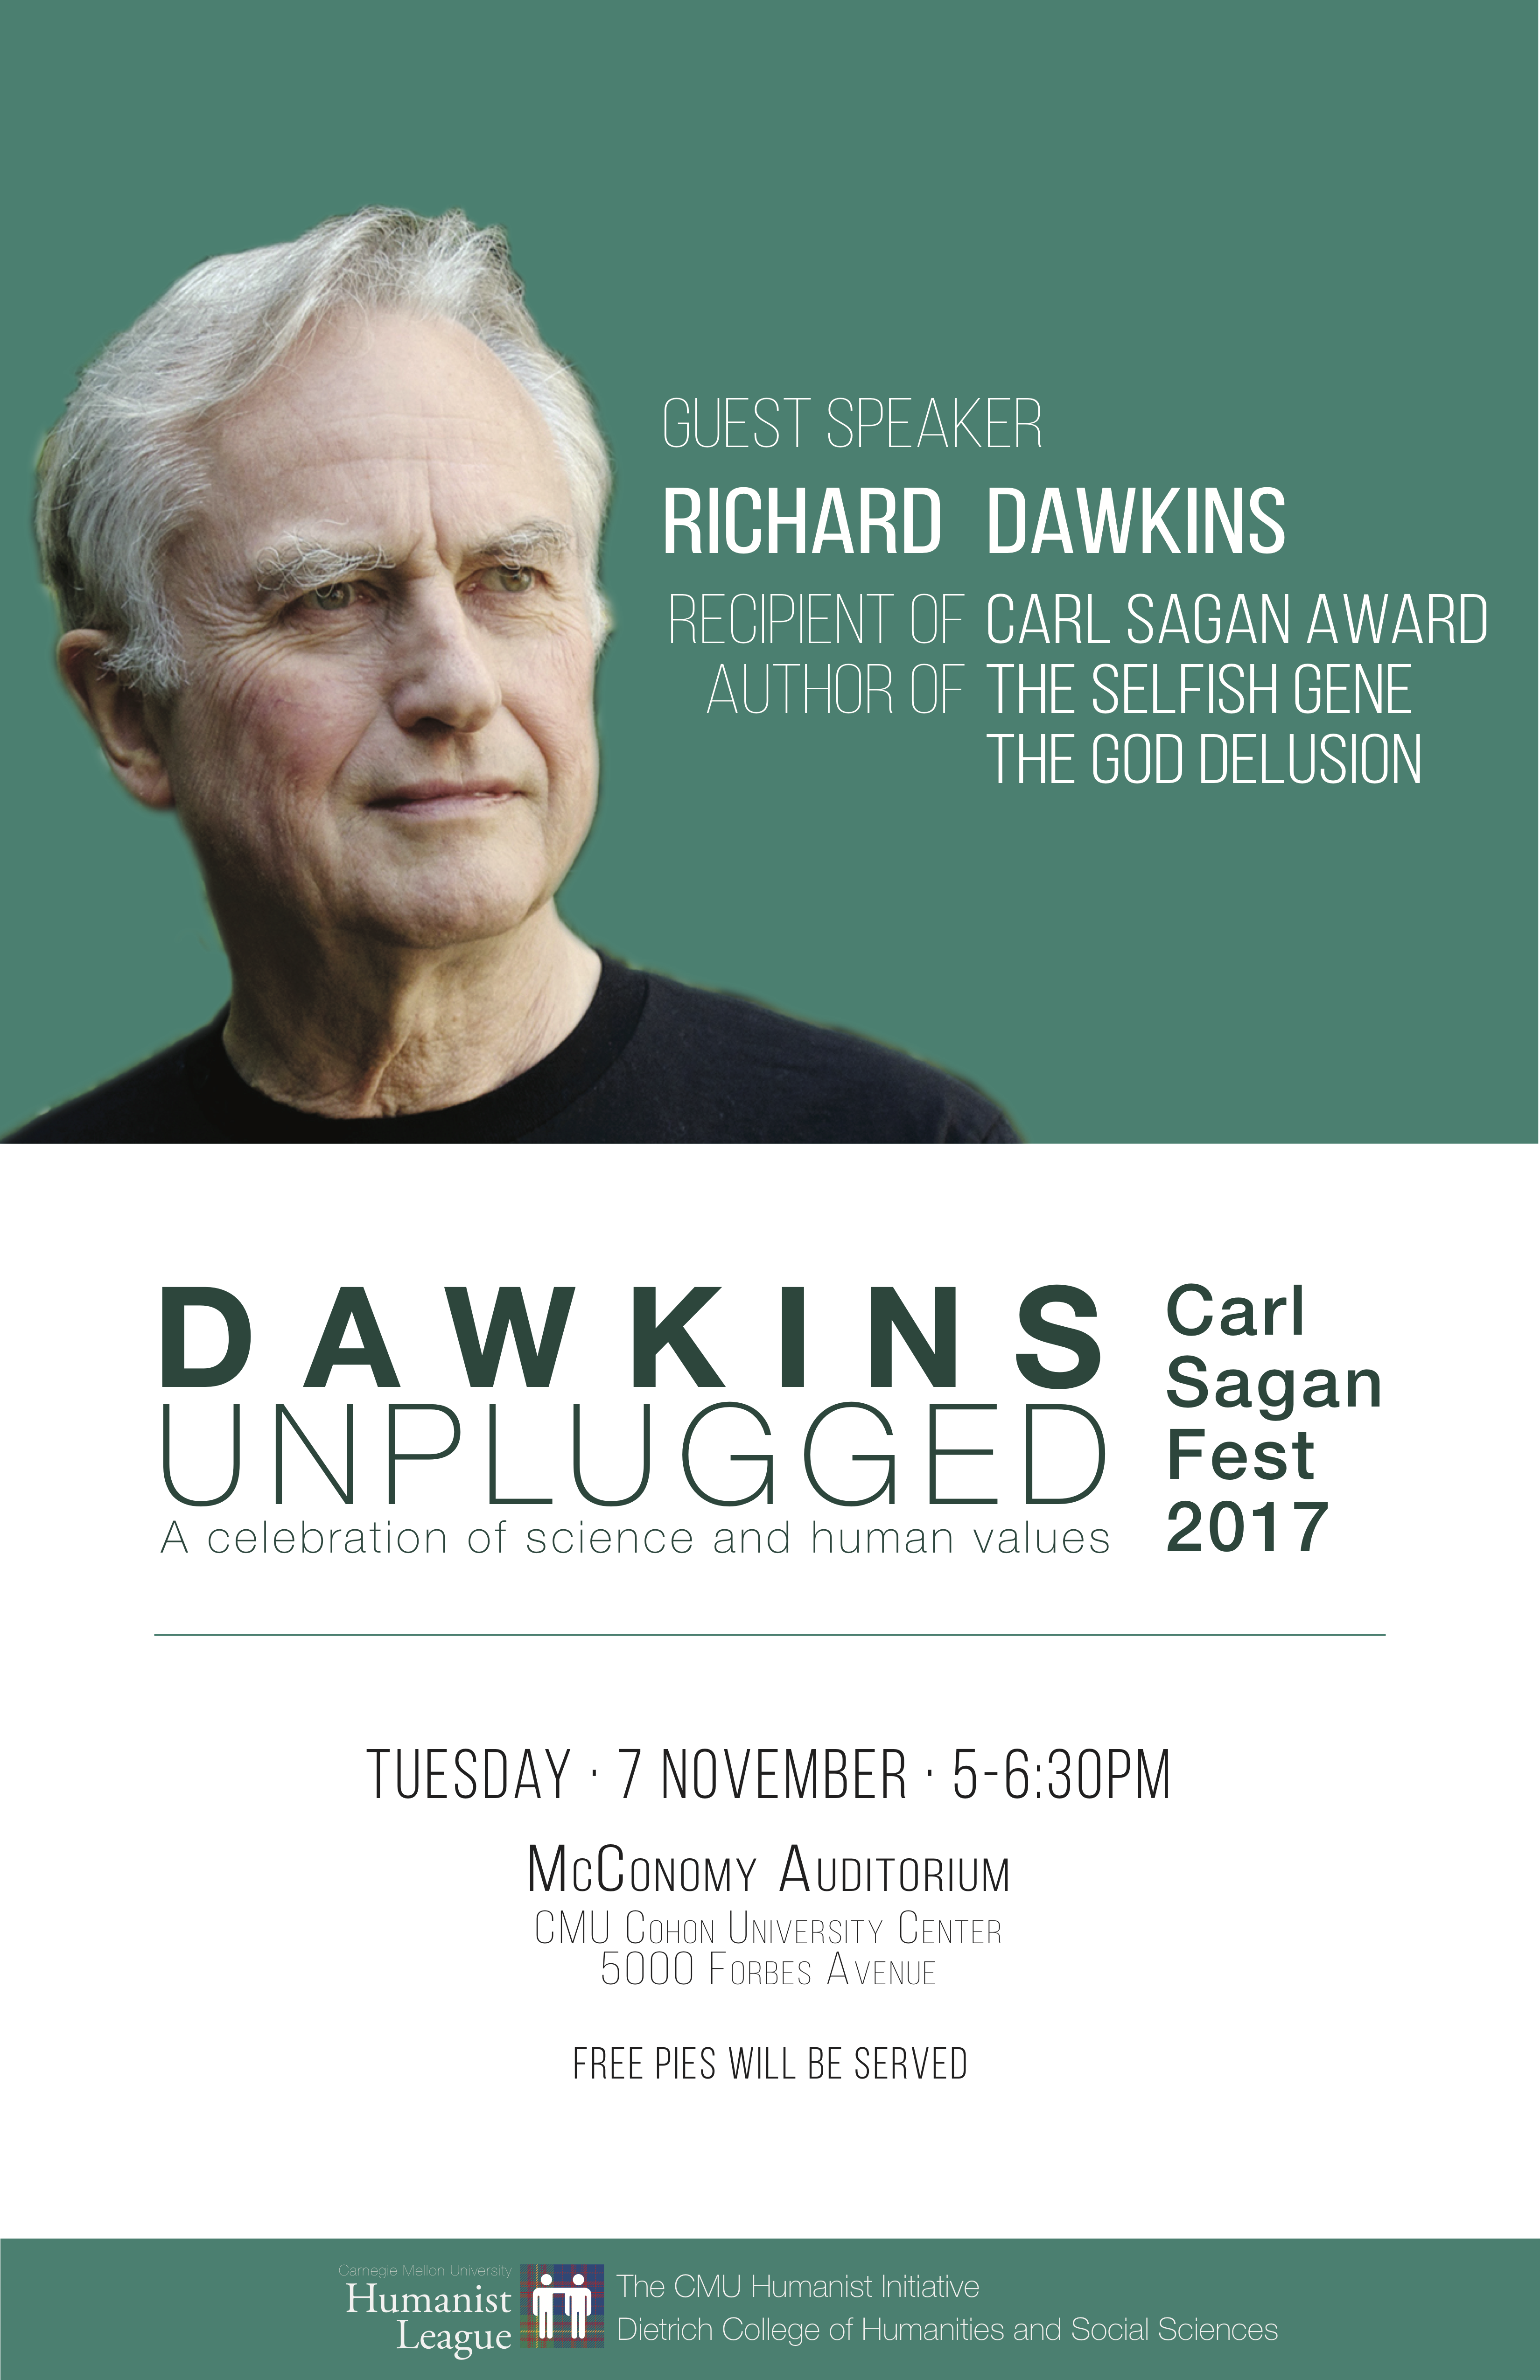 Carl Sagan Fest, featuring Richard Dawkins Poster